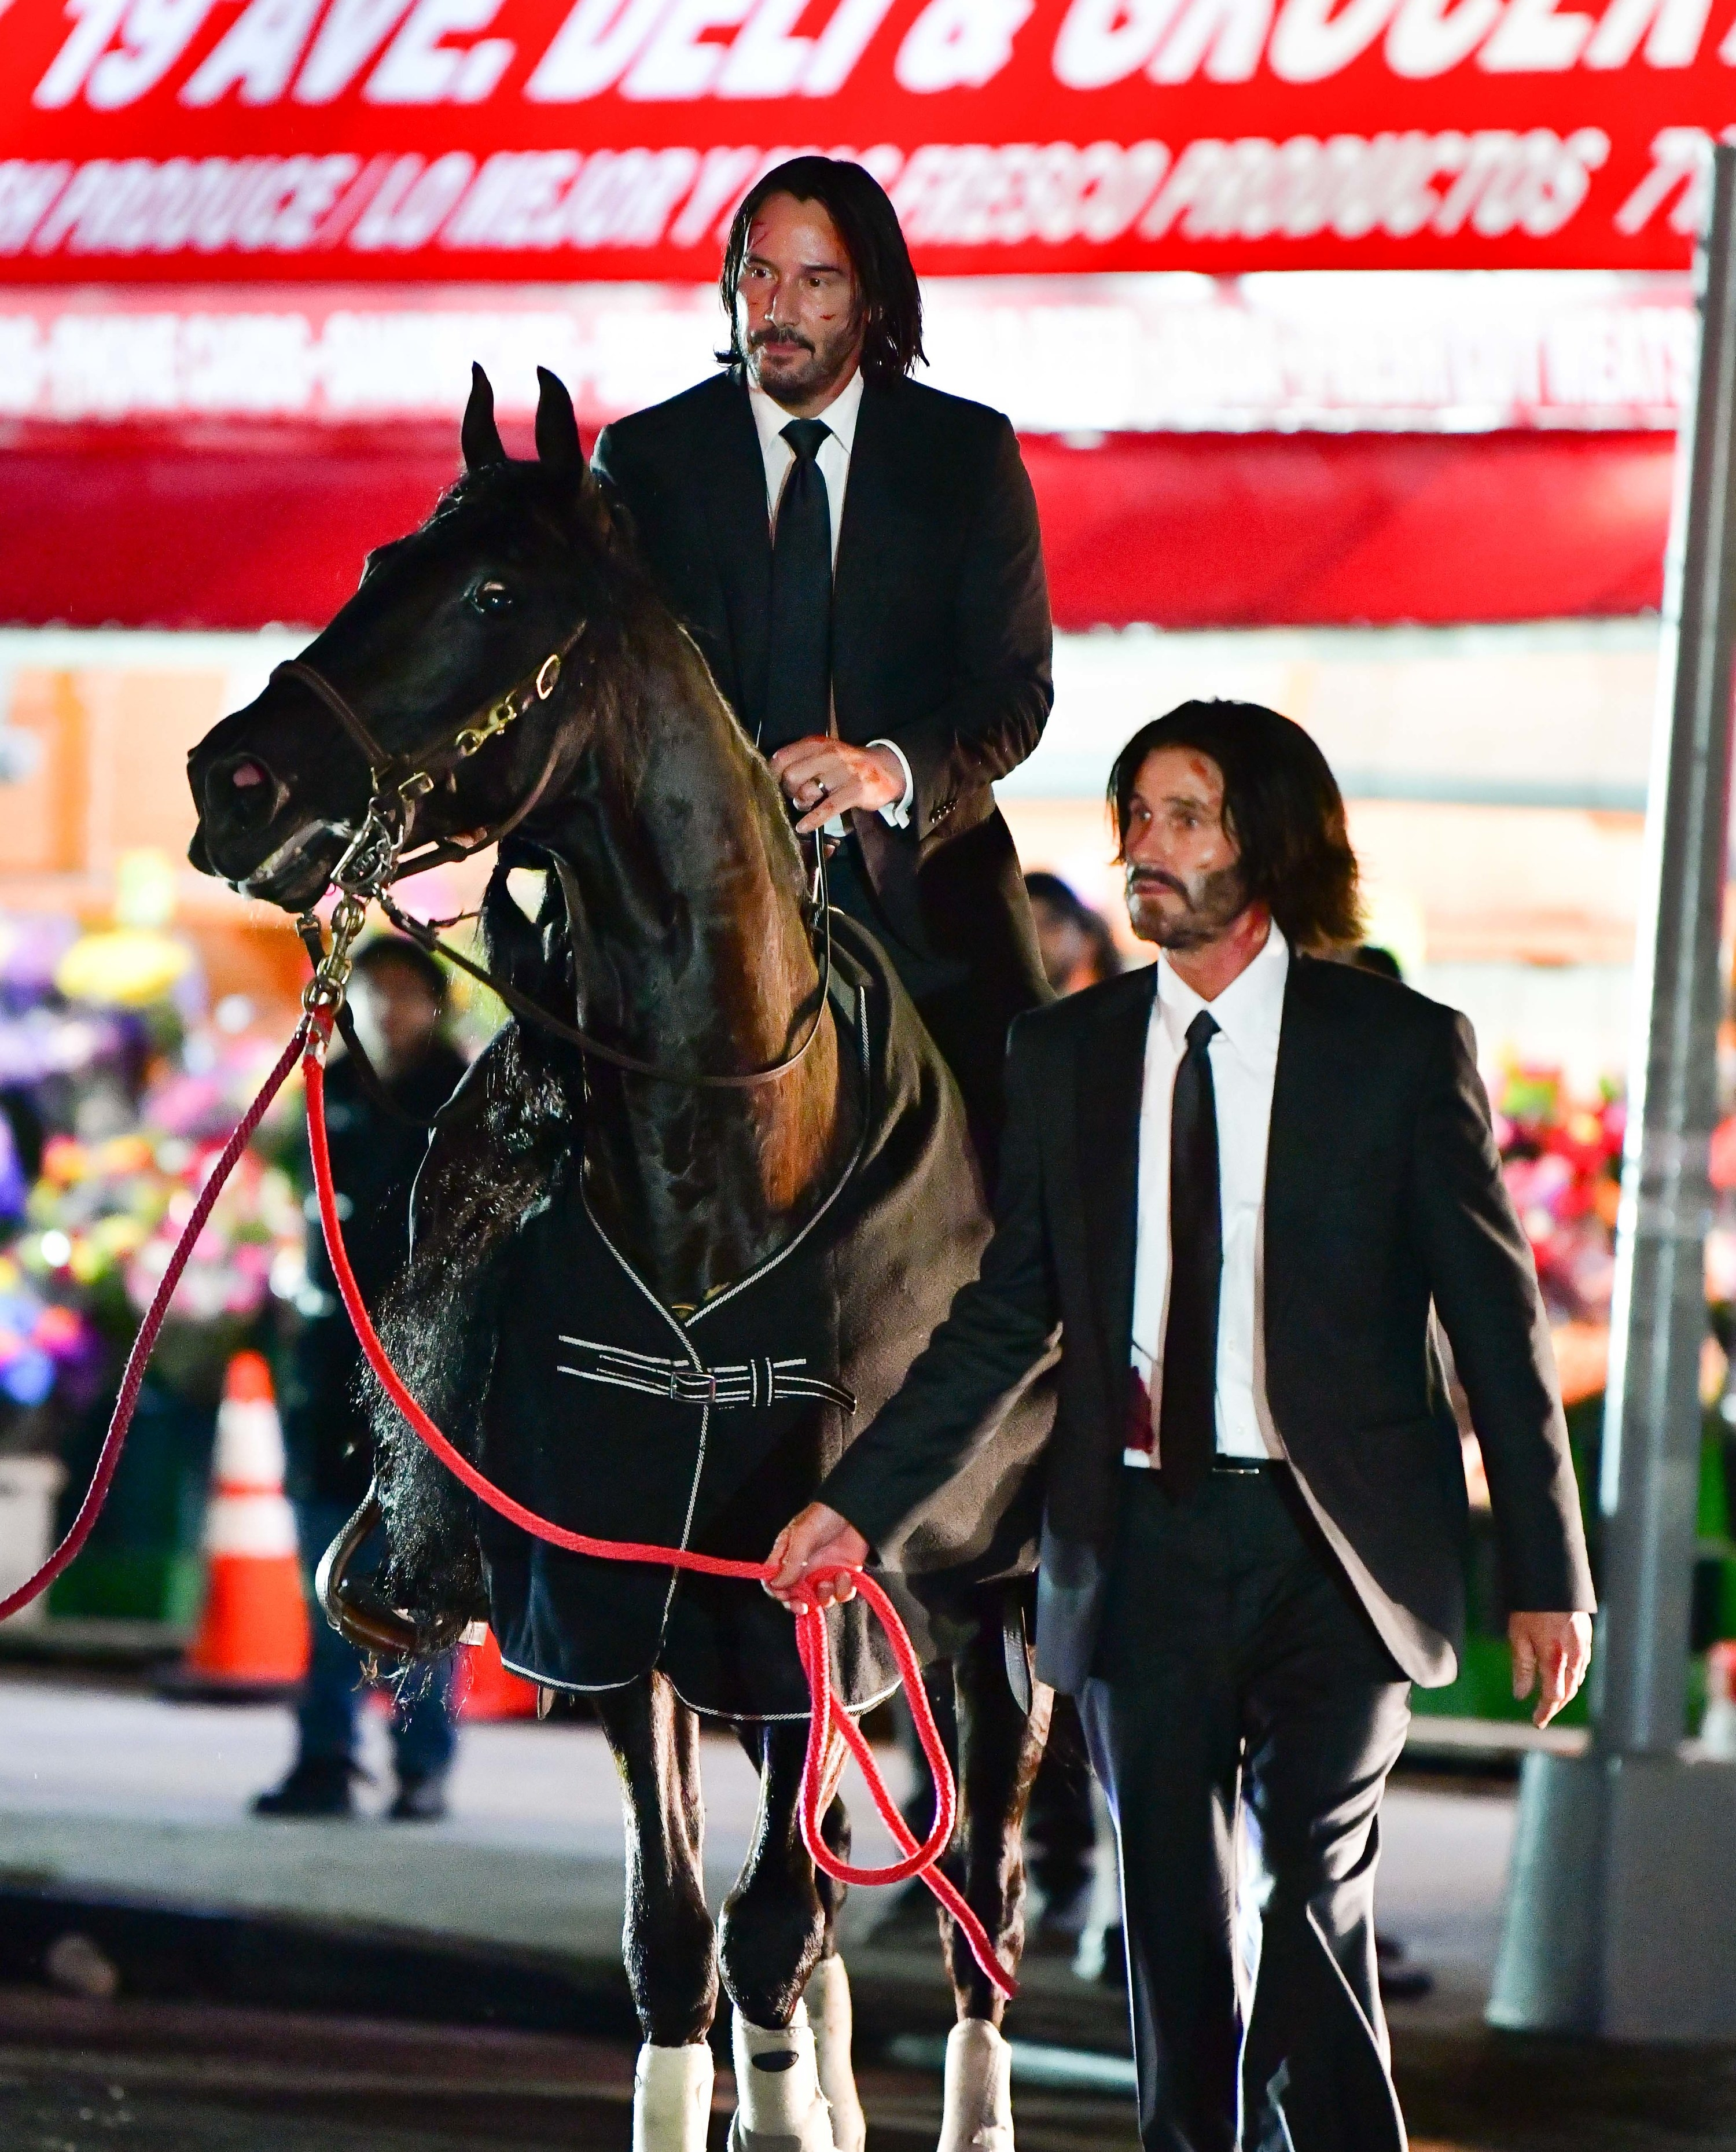 Keanu Reeves and his stunt double walking outside at night